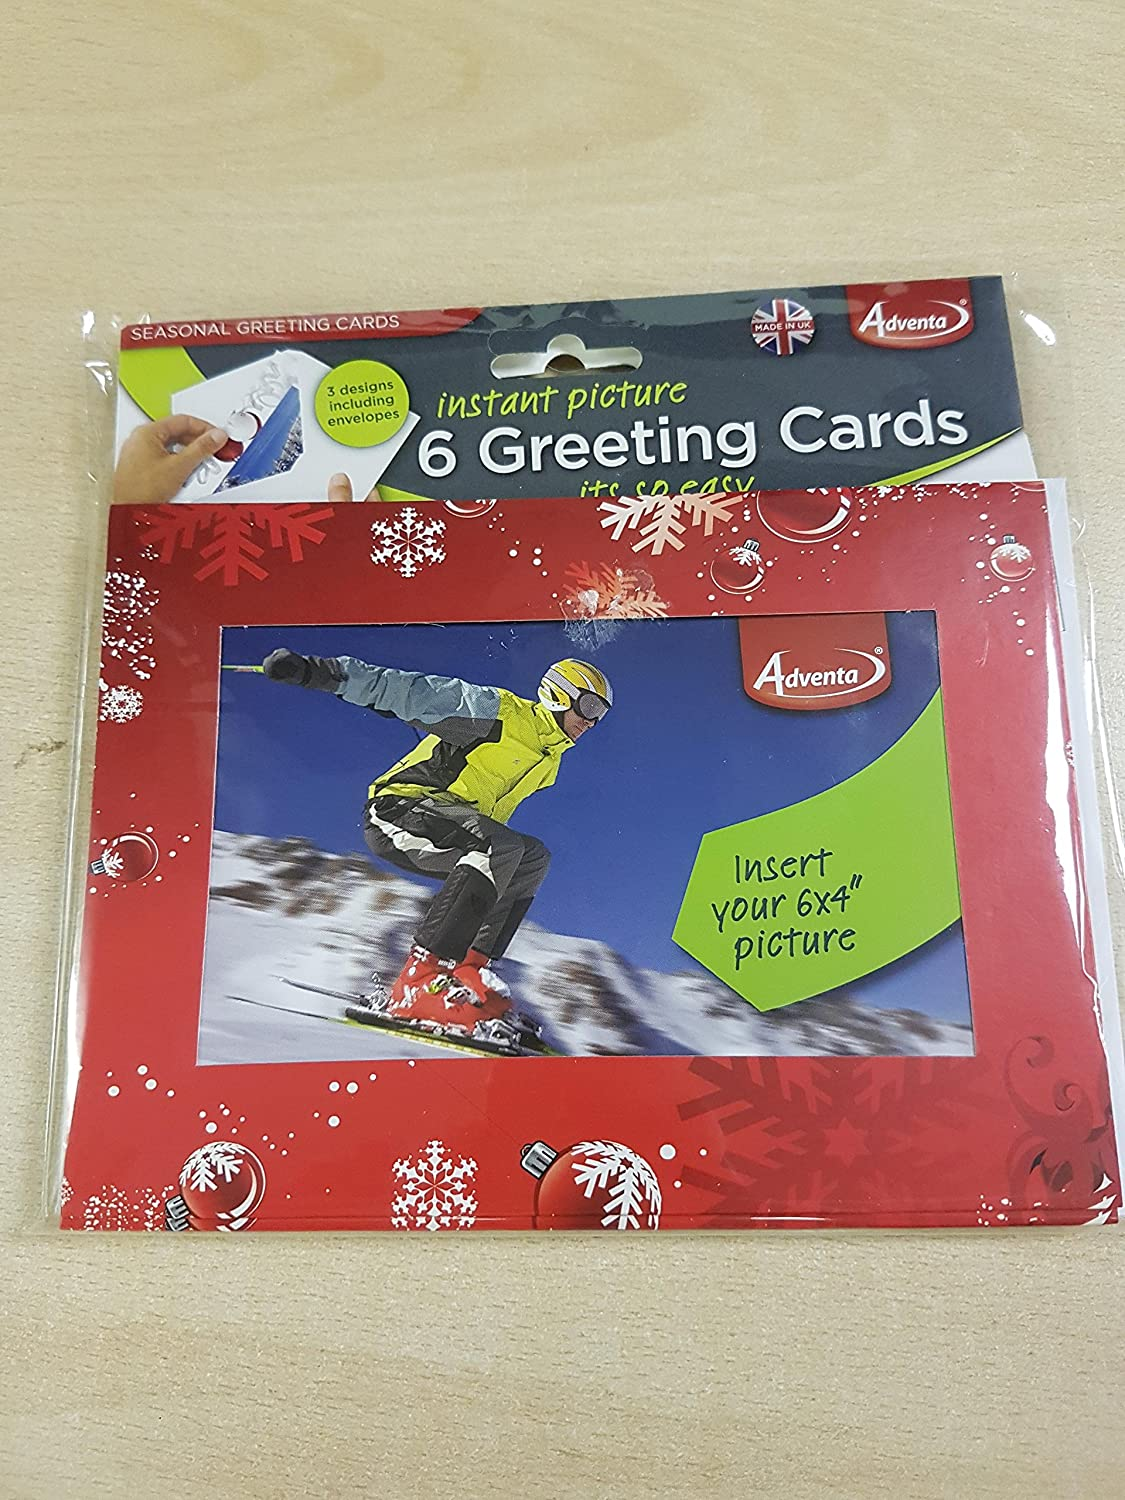 6x Greetings Cards Insert Your Own 6x4 Photo Amazon Office